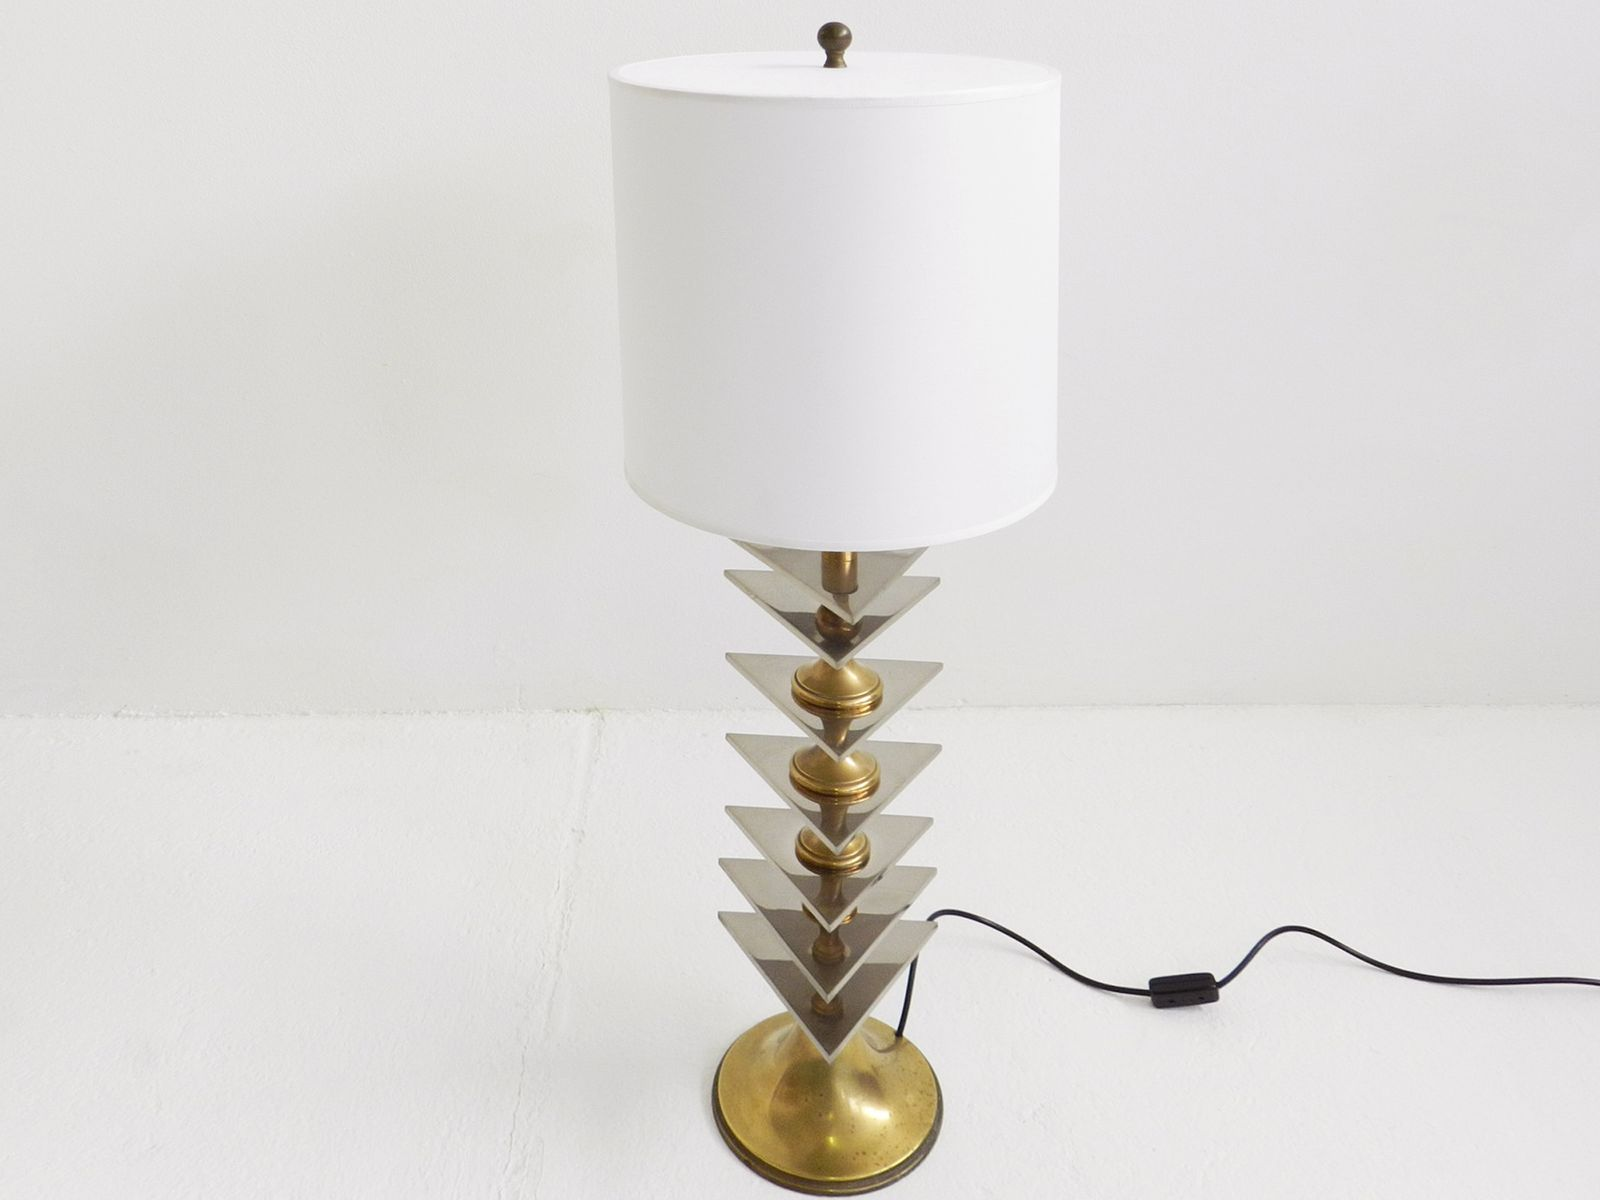 Large italian brass and stainless steel table lamp 1960s for sale 173200 aloadofball Gallery